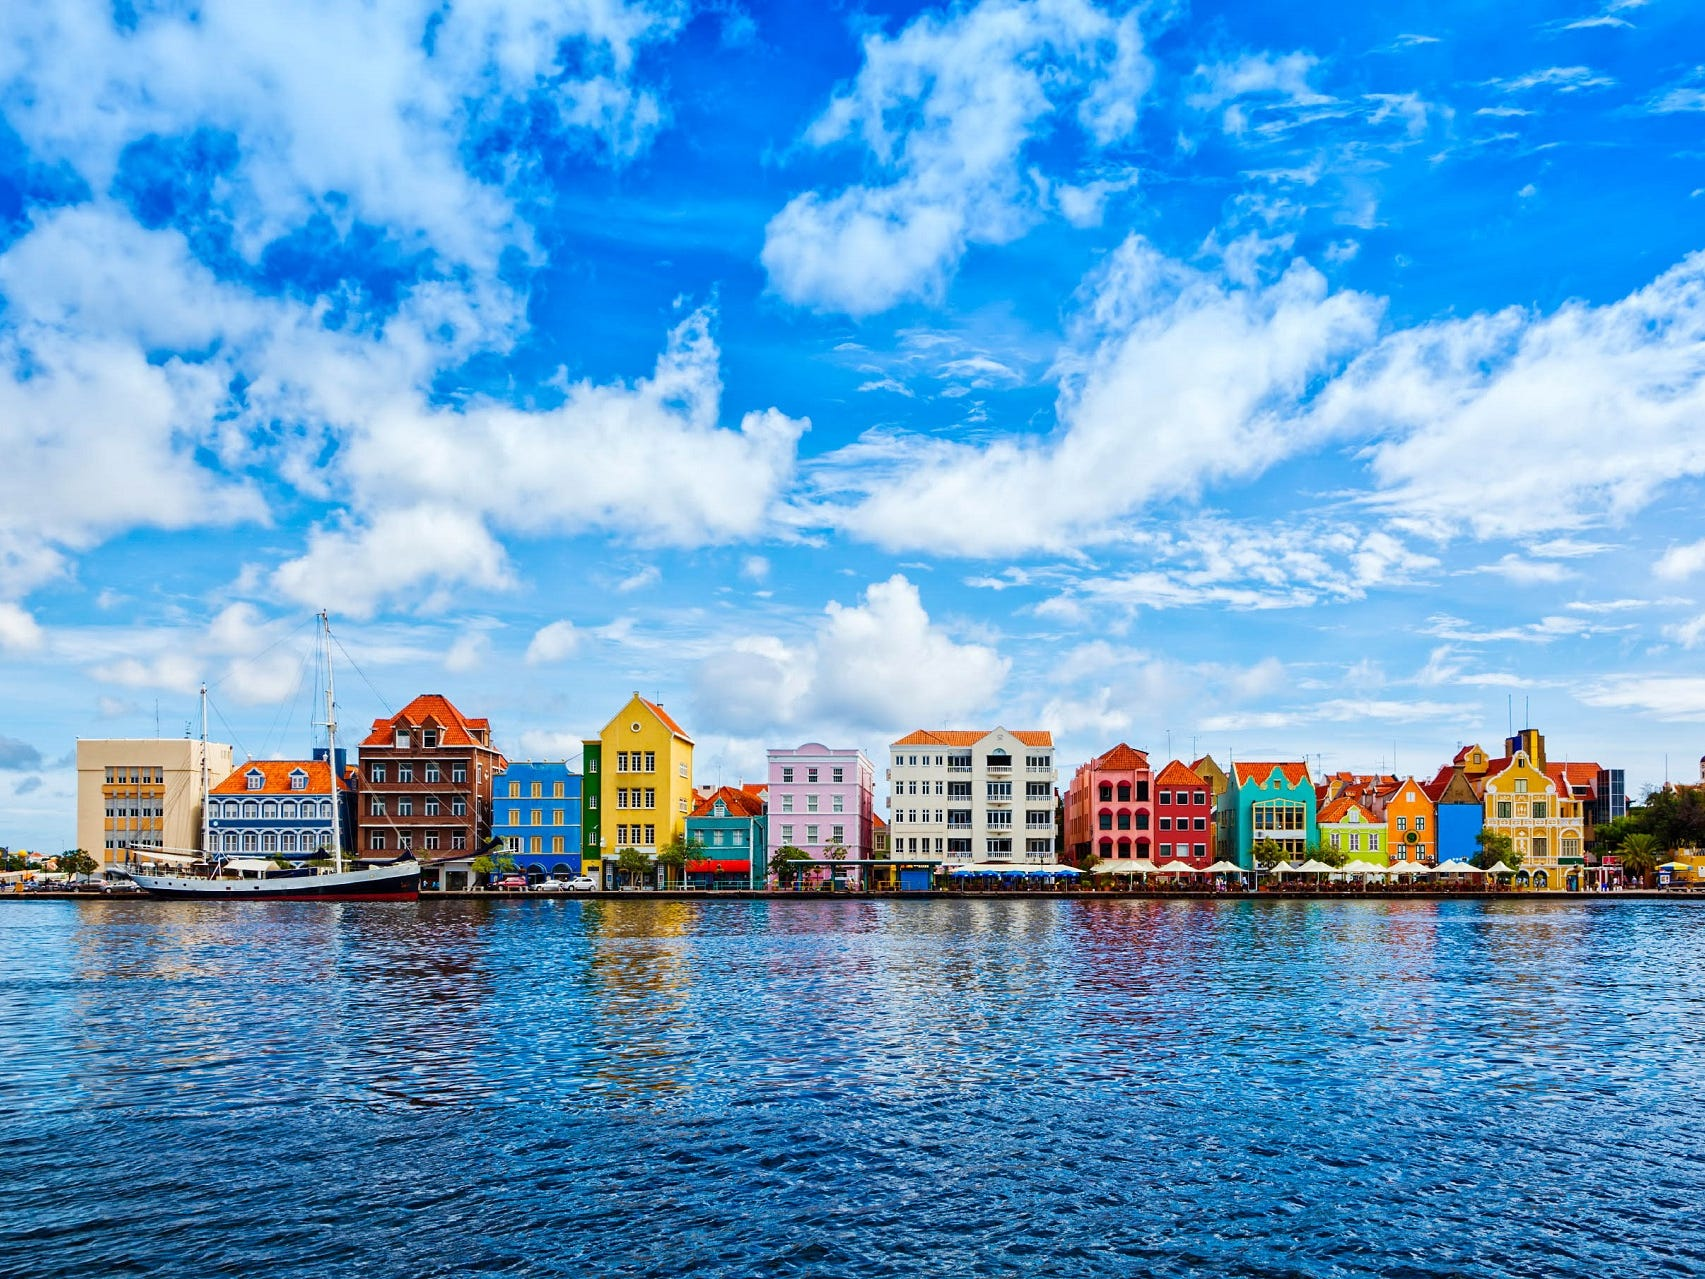 Curaçao is one of the ABC islands and is part of the Netherland Antilles. The island's UNESCO World Heritage capital city of Willemstad is one of the loveliest in the Caribbean and is celebrated for its cityscape of vibrantly painted Dutch colonial houses.